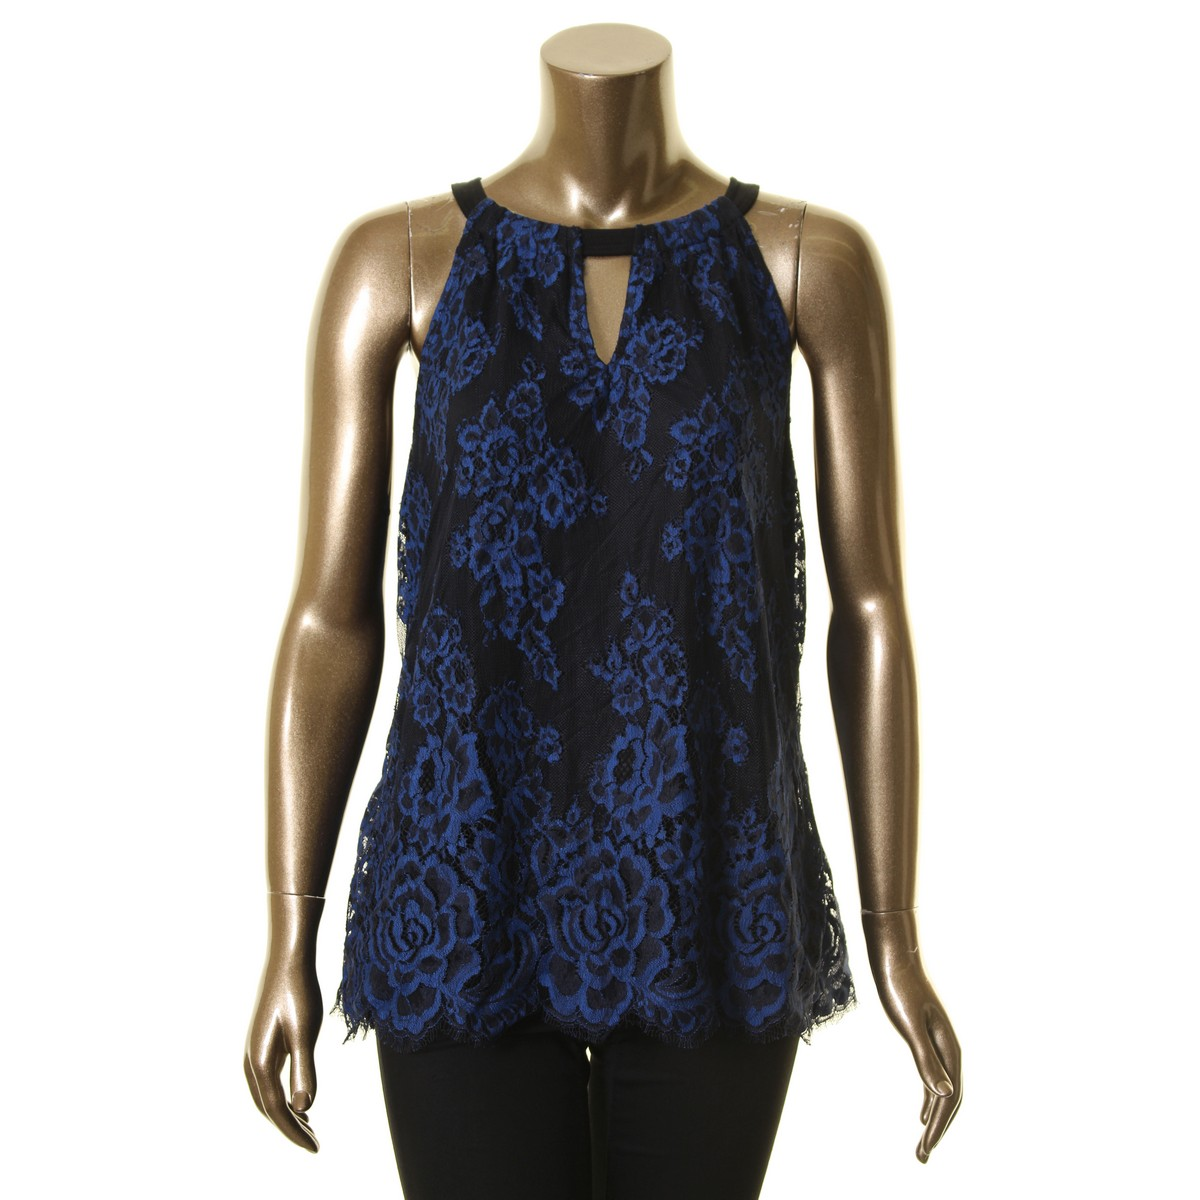 INC-NEW-Women-039-s-Black-amp-Blue-Lace-Halter-Neck-Keyhole-Blouse-Shirt-Top-TEDO thumbnail 3